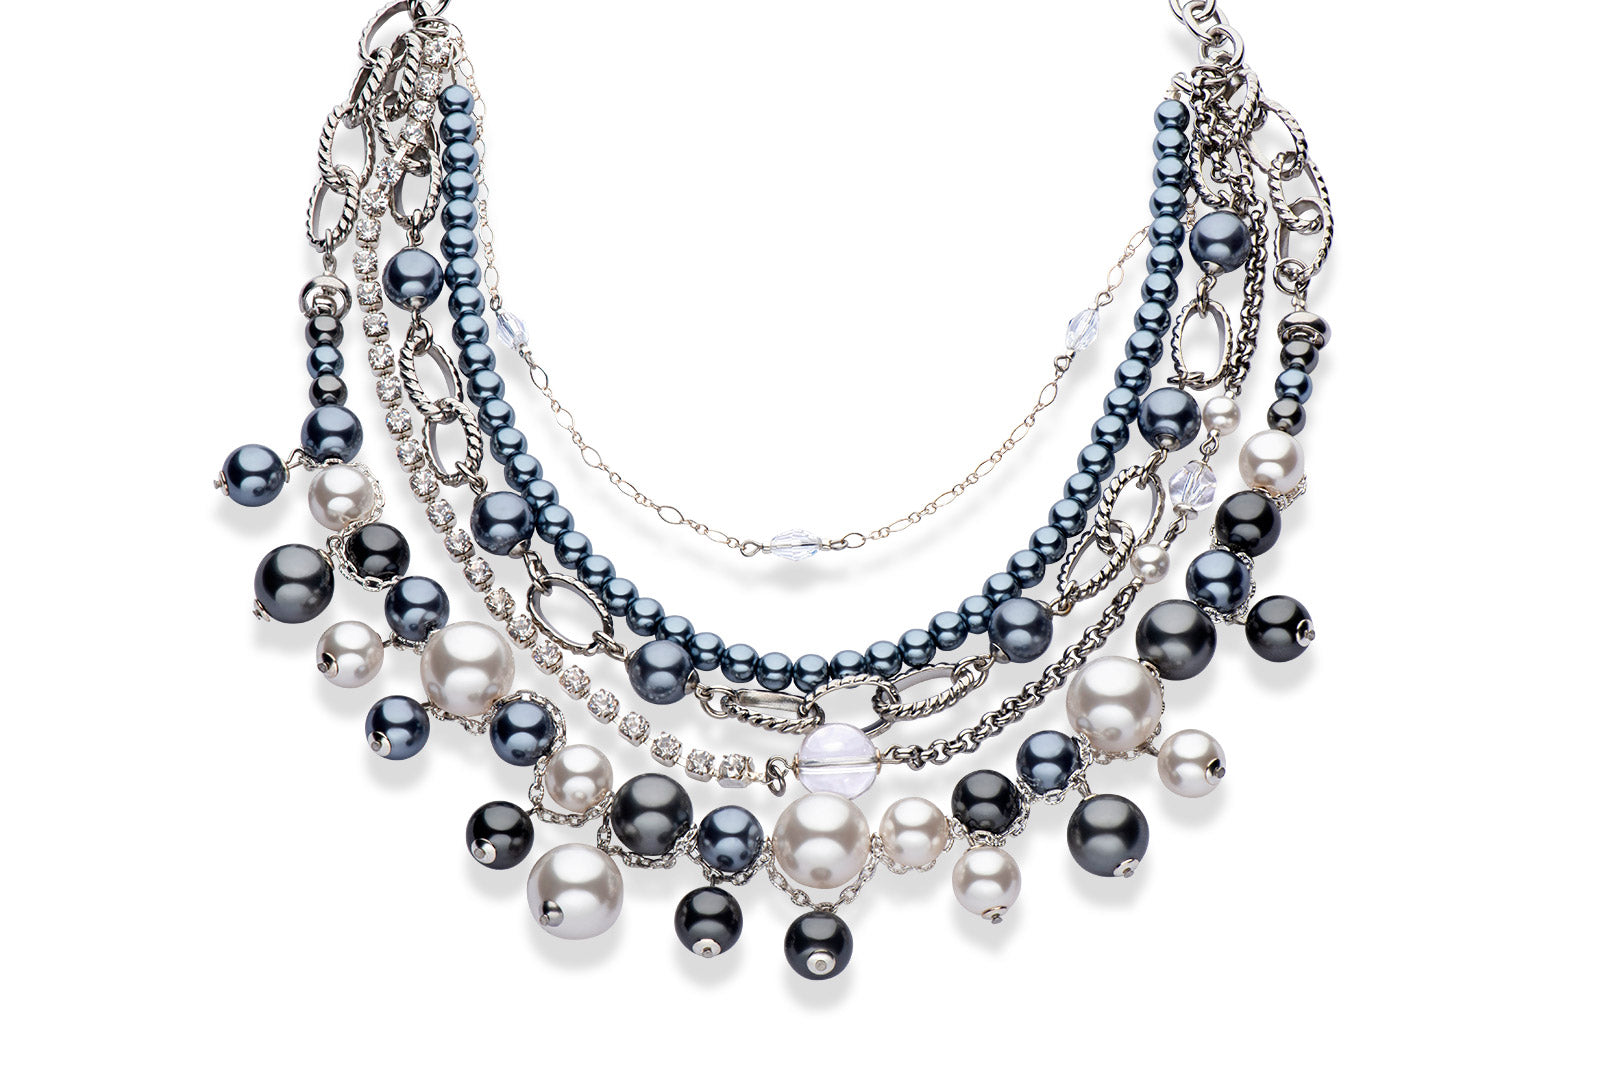 Swarovski crystal pearl statement necklace